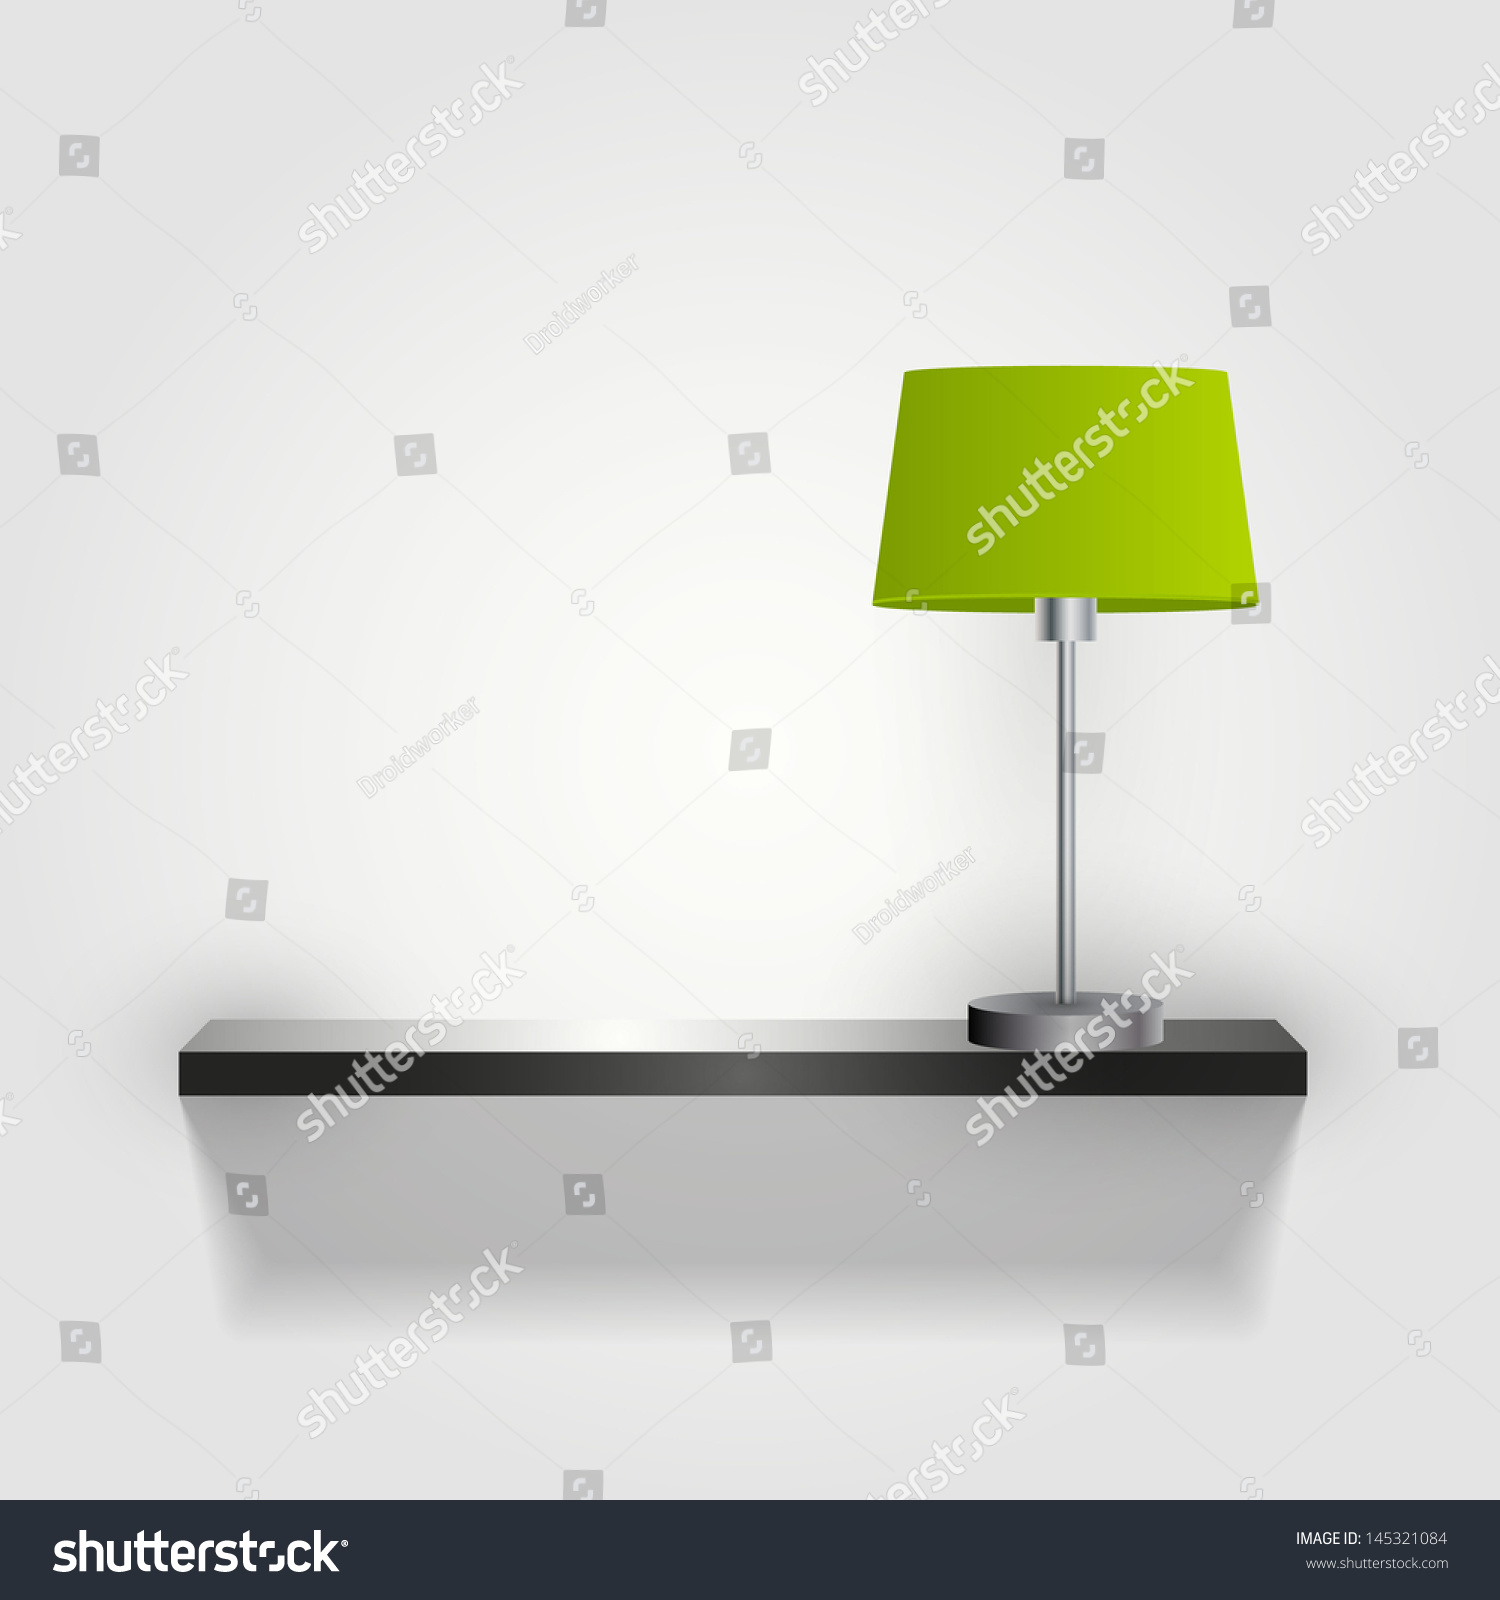 Wall Lamps Vector : Wall With Lamp Green Lamp /Vector/ Minimal - 145321084 : Shutterstock